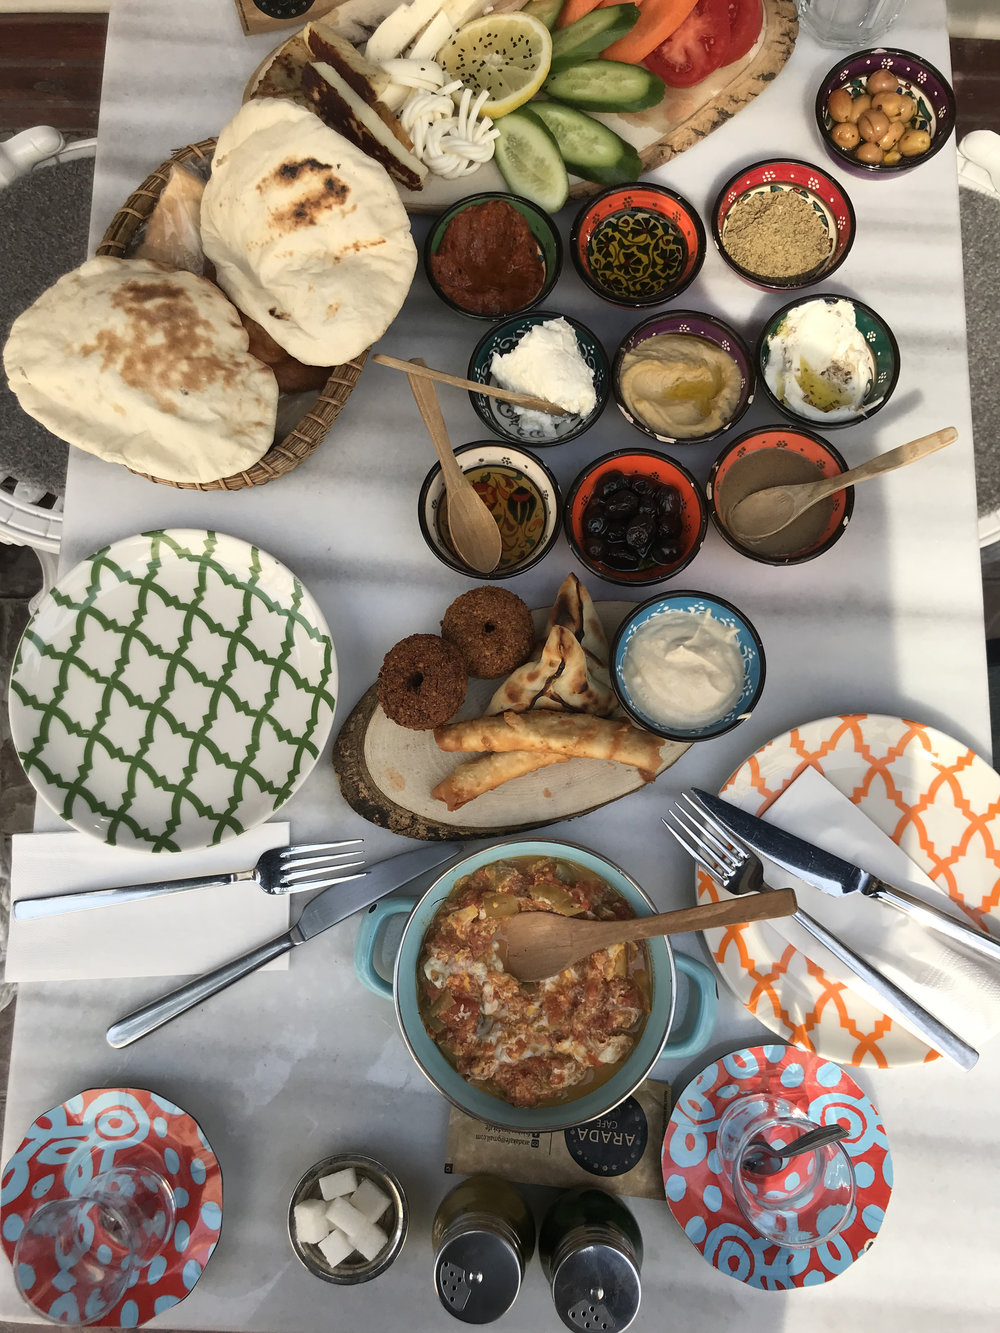 Typical Turkish breakfast (at least for us tourists)